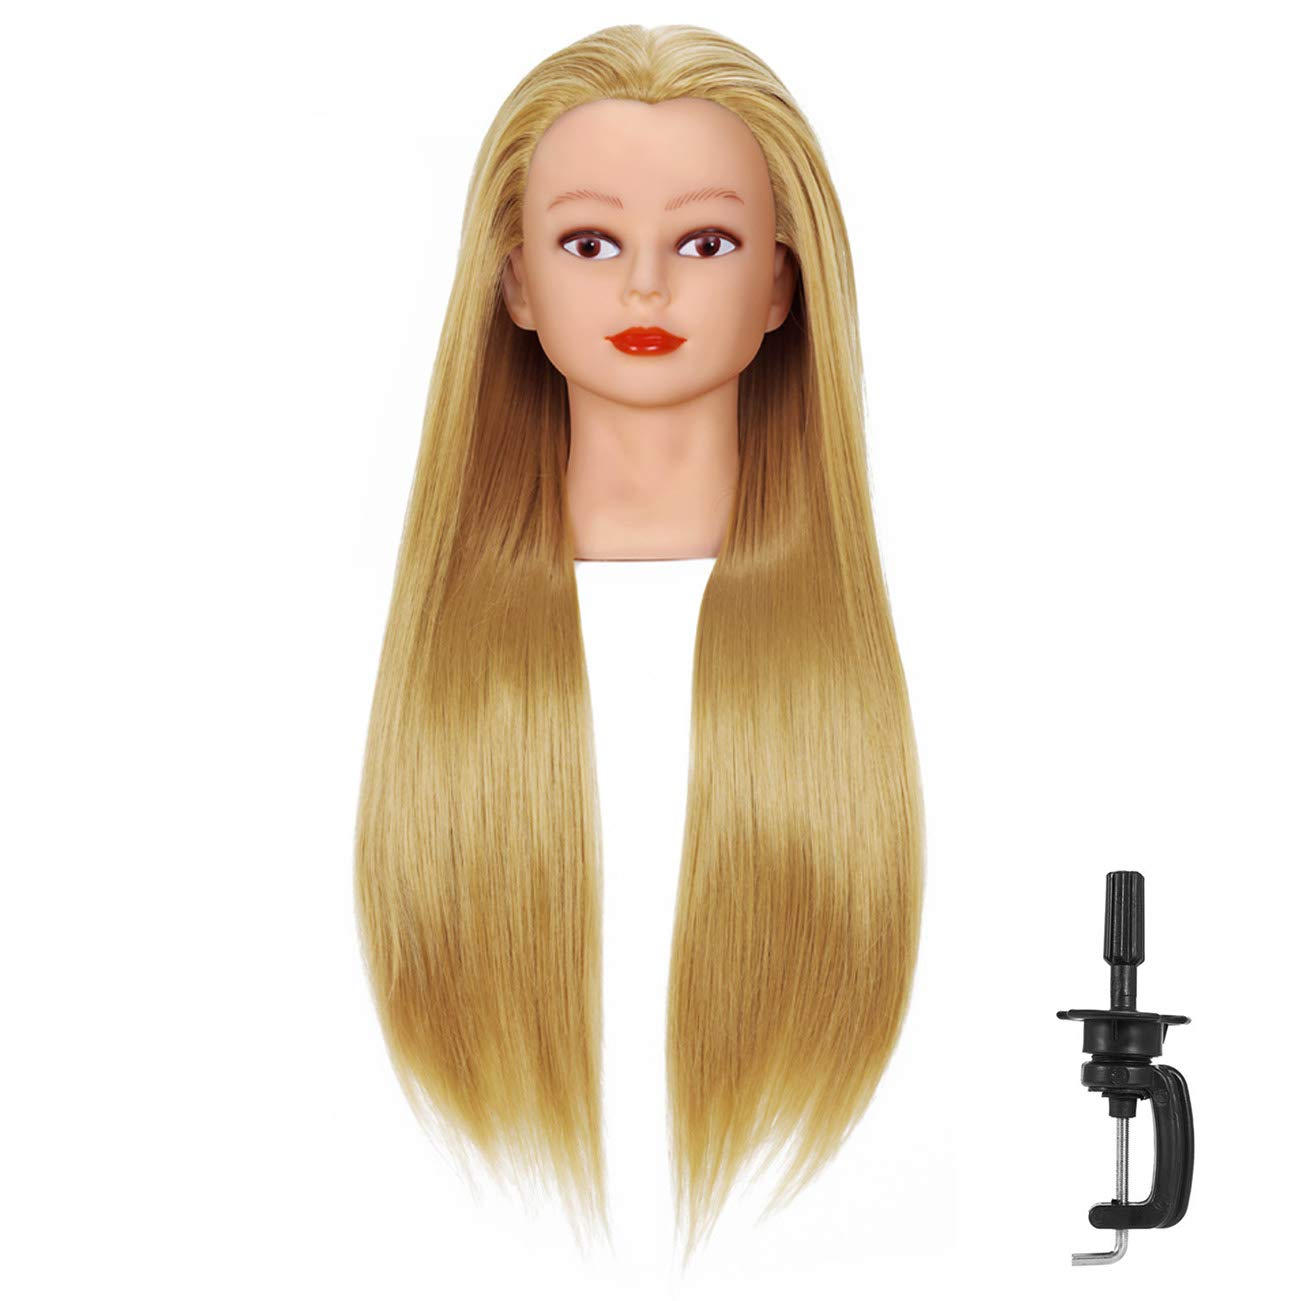 Amazon Com Czfy Cosmetology Mannequin Head With Synthetic Hair And Adjustable Stand 26 28 Blonde For Braiding Hair Styling Training Hairart Hairdressing Salon Display Blonde Beauty